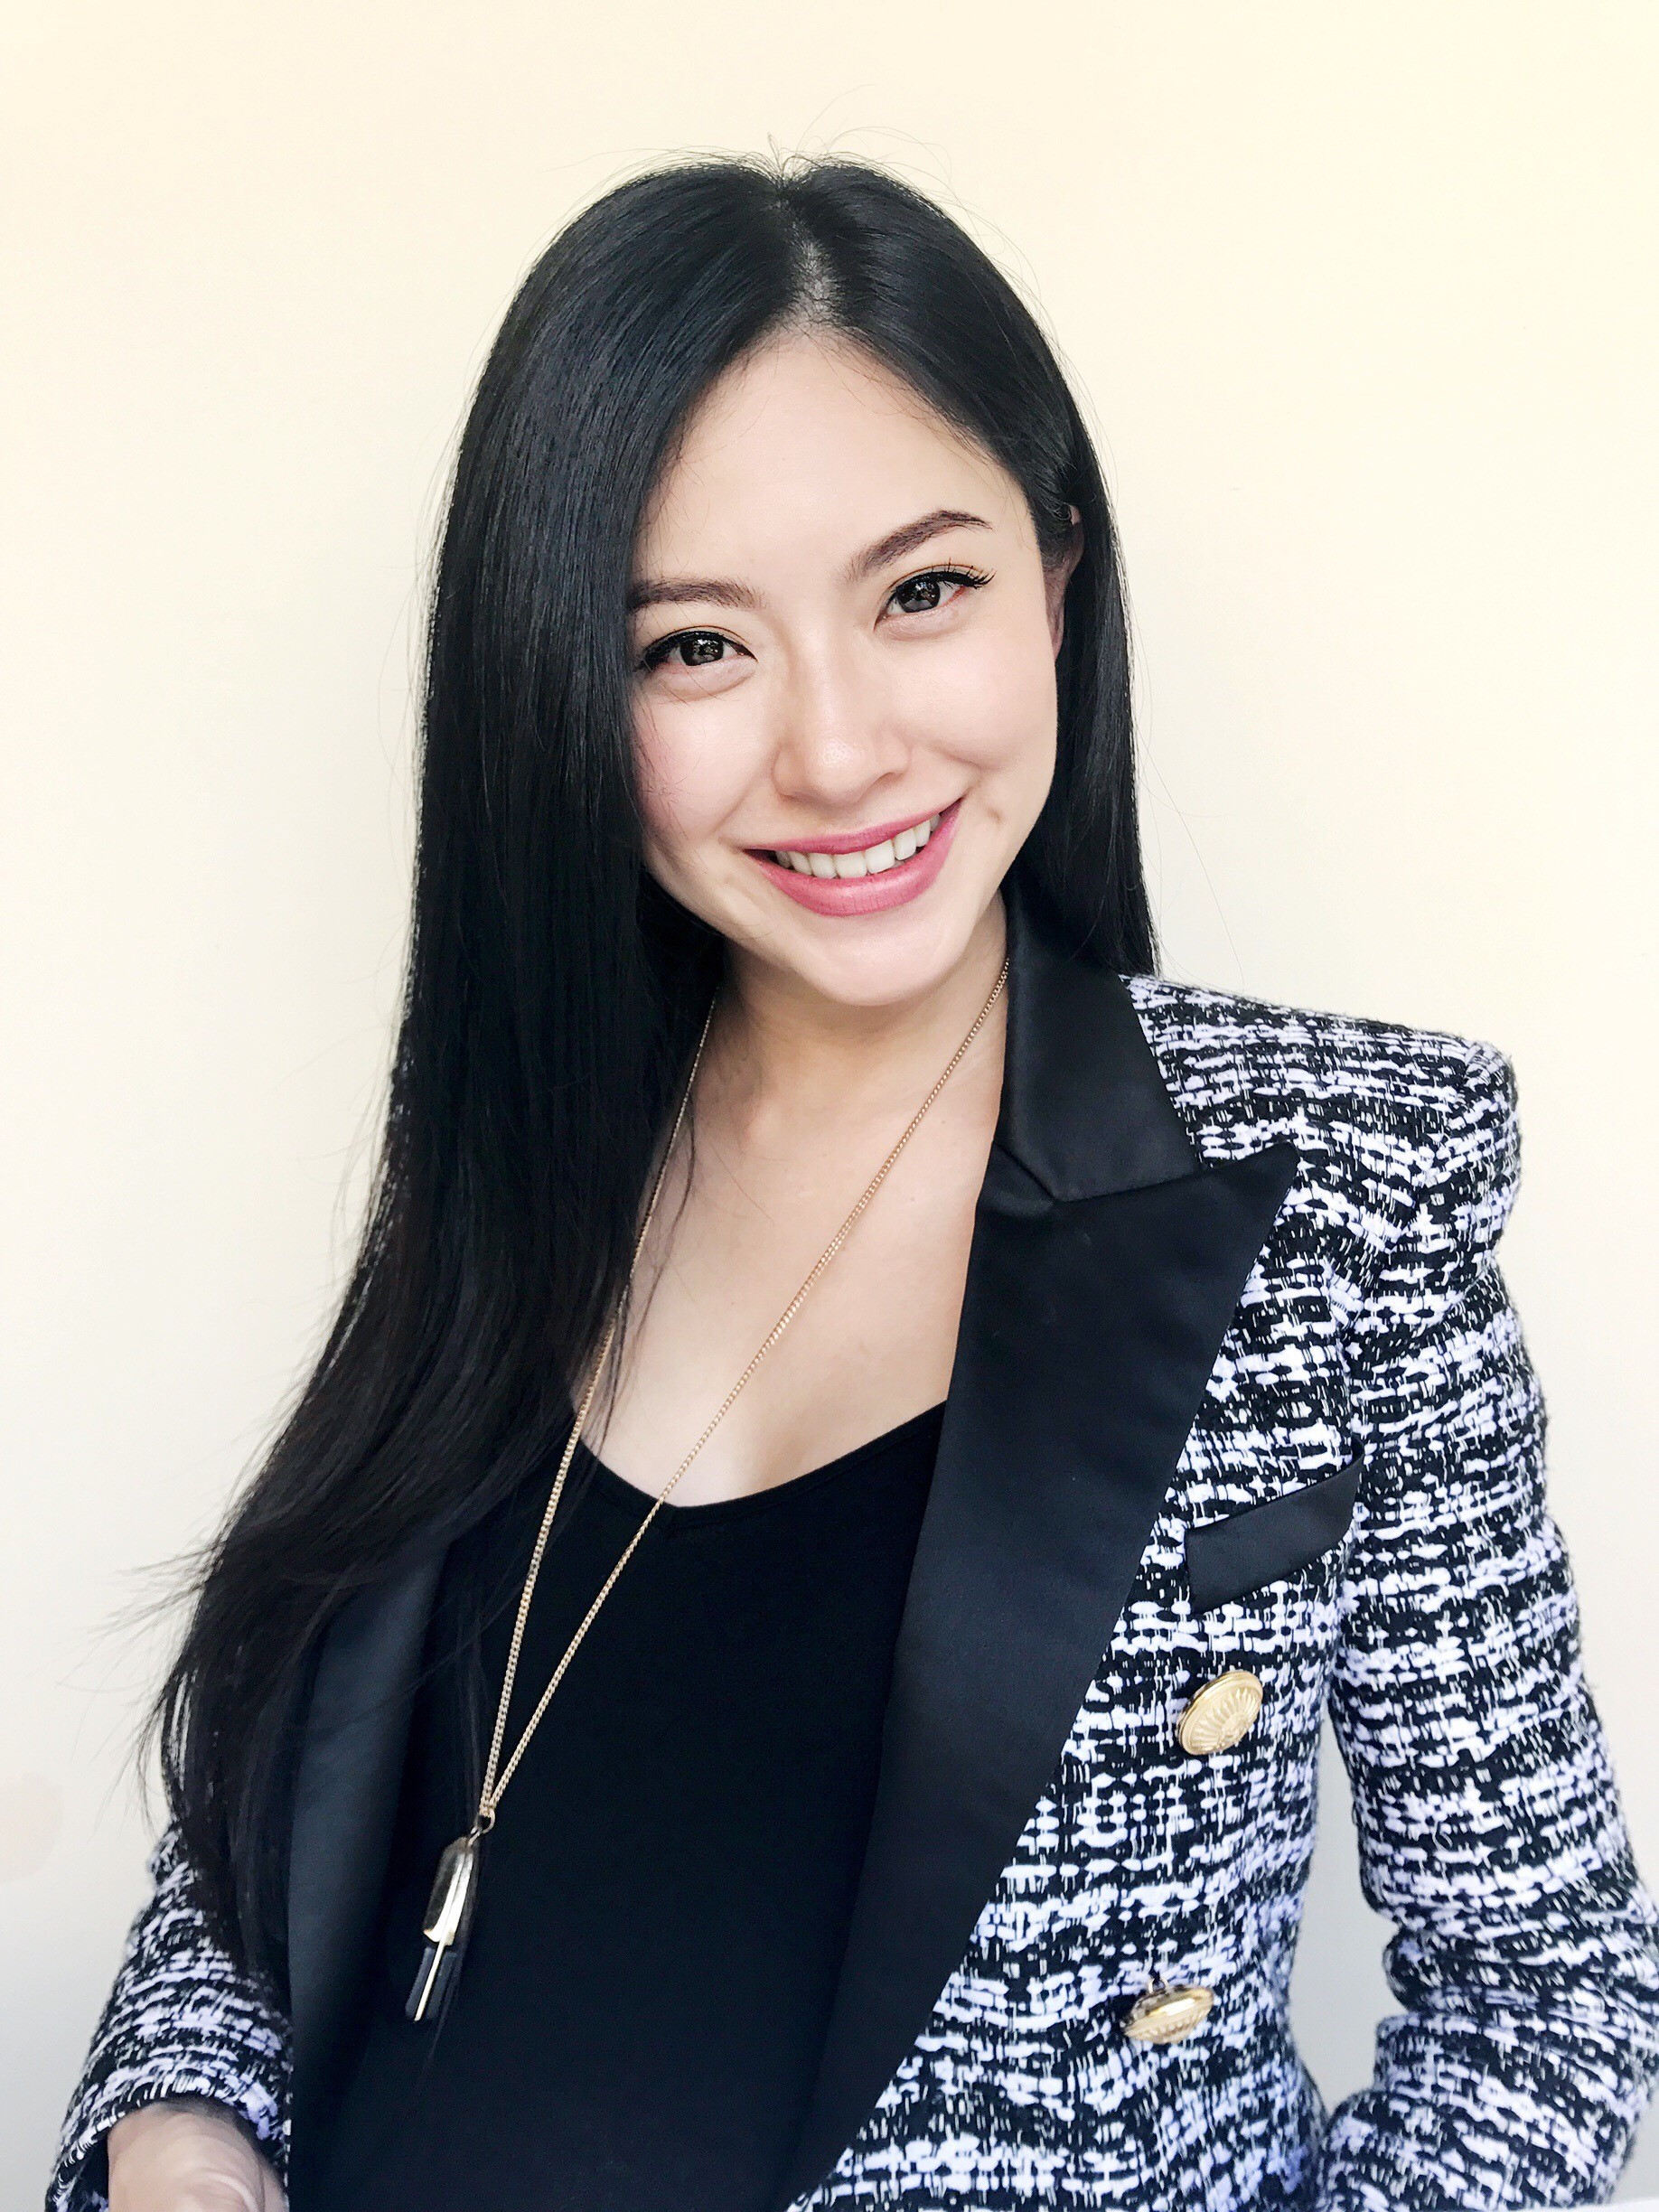 Race Wong, COO of Ohmyhome, will share the highs and lows of her career journey during the Startup Session at the business festival 'The Island Exchange' on March 2. Photo courtesy: Roco Communications